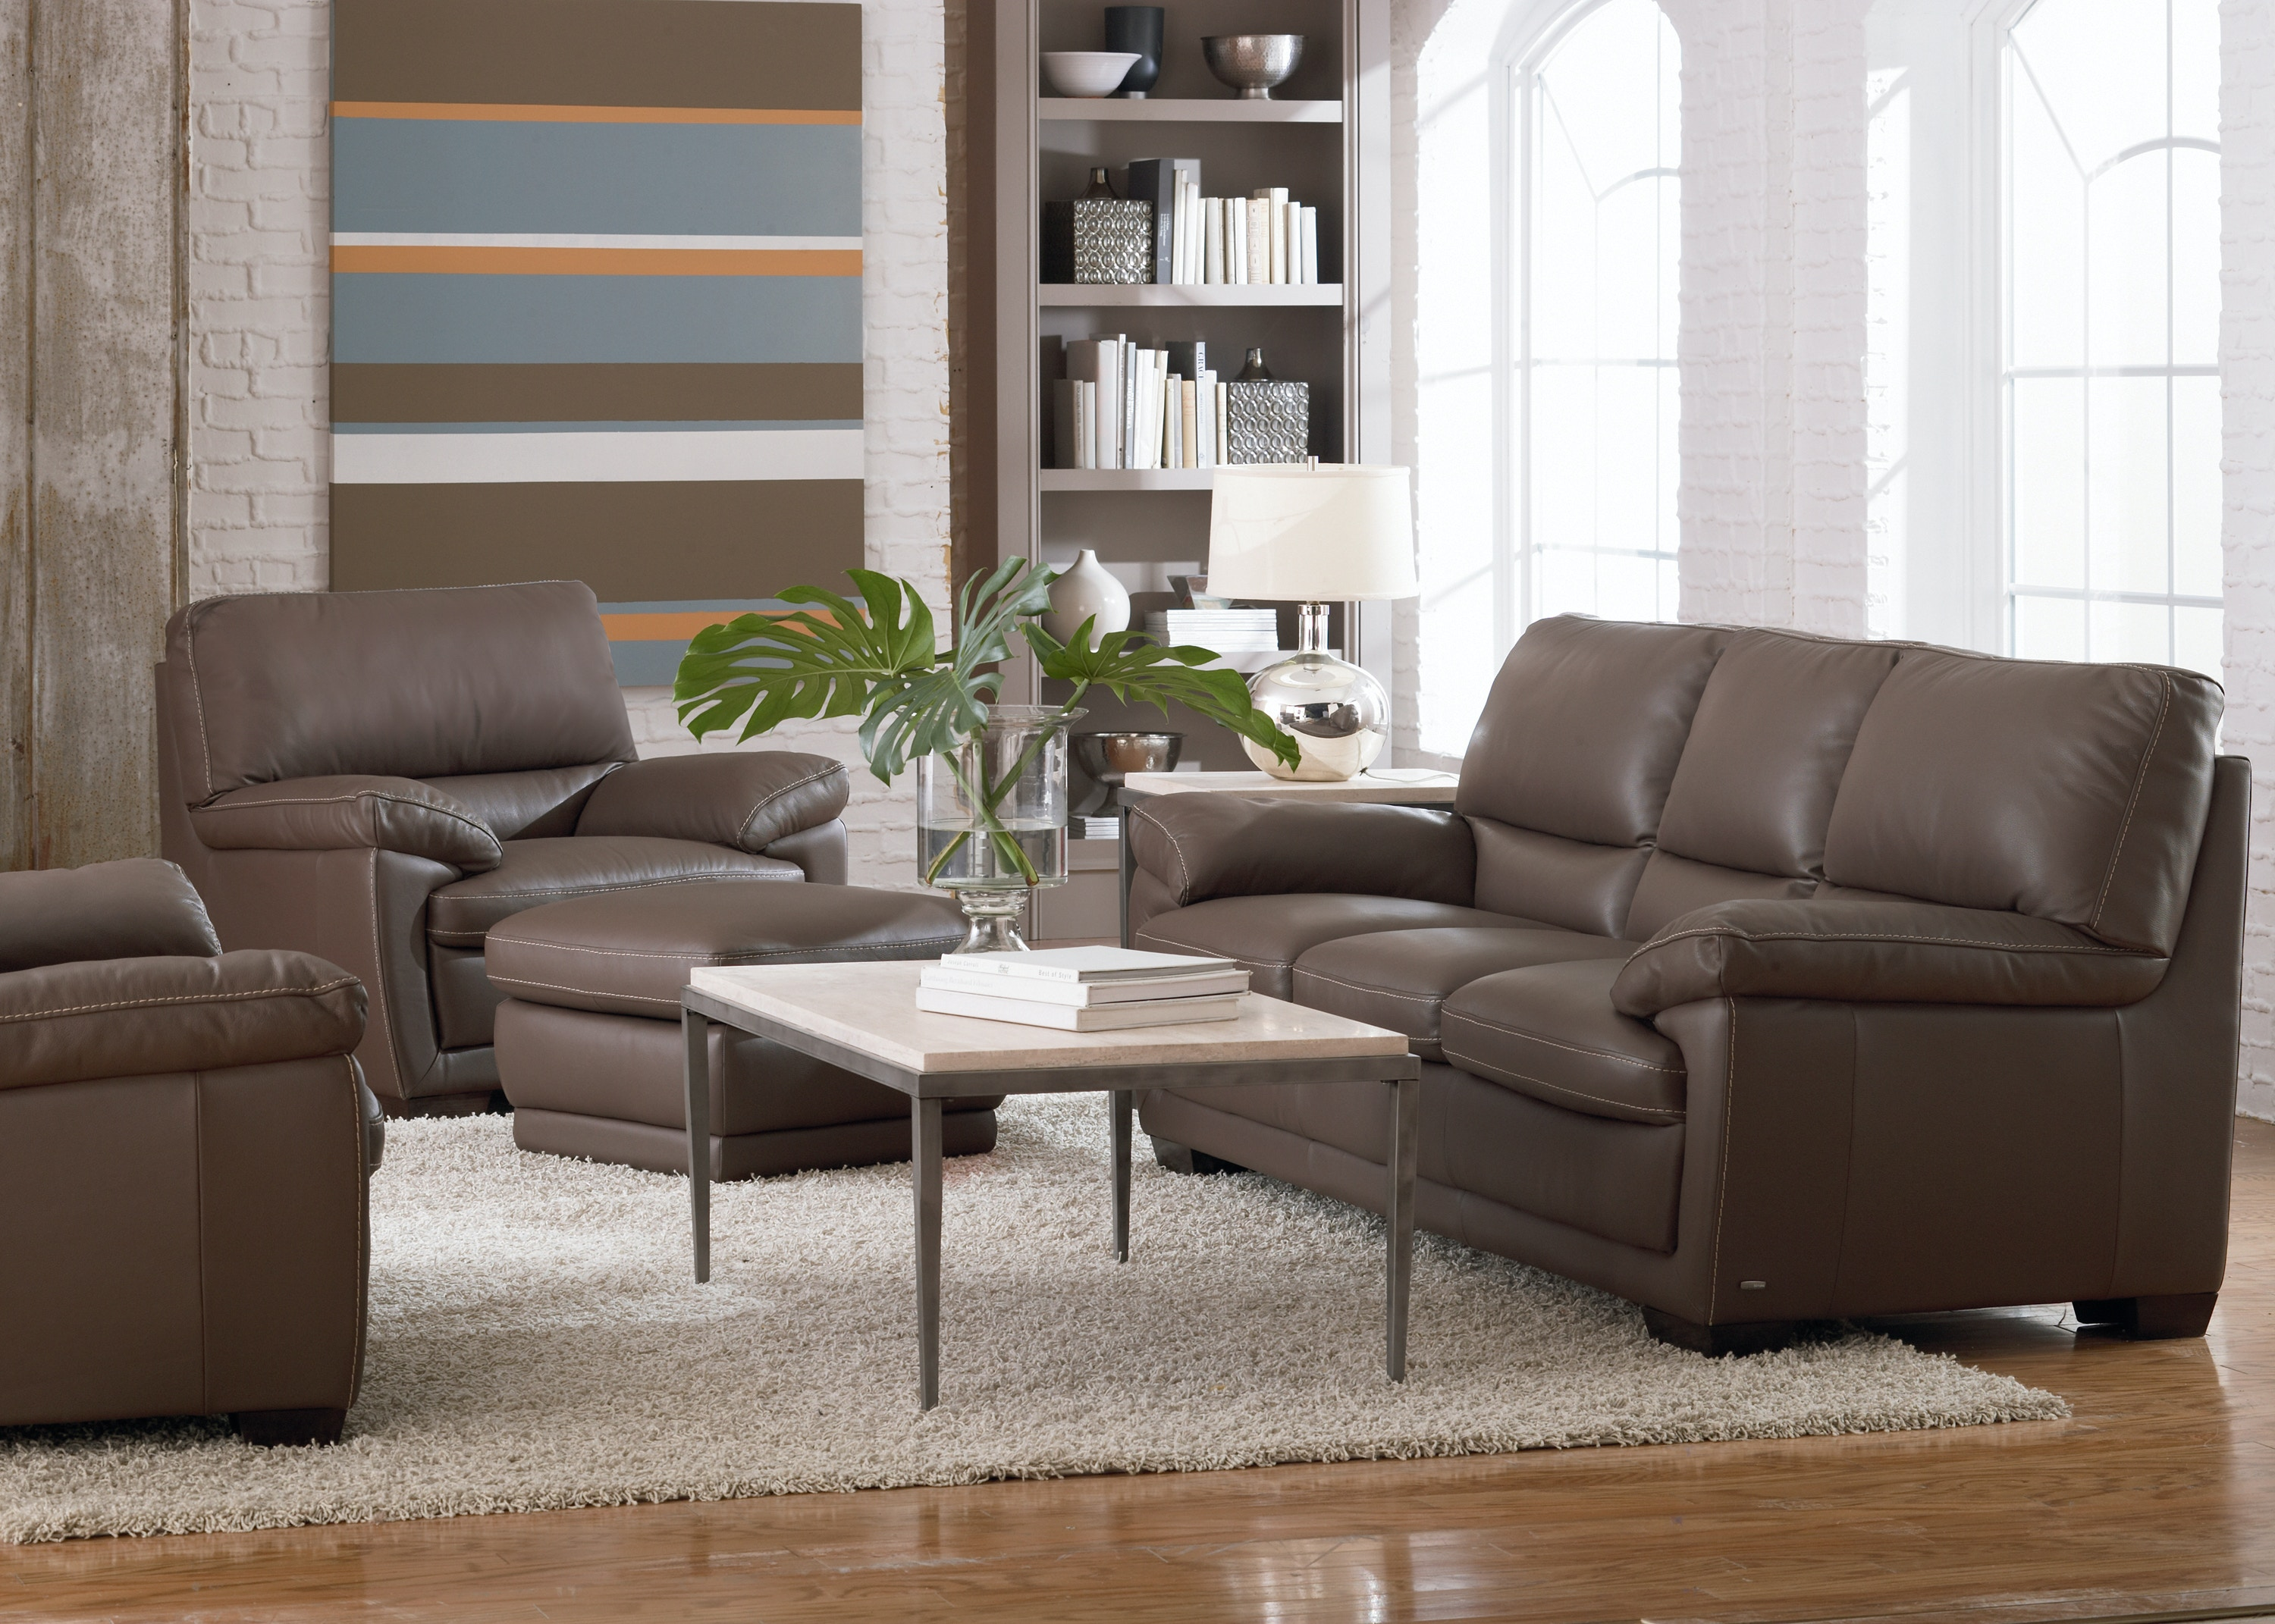 Natuzzi Leather Sofas Natuzzi Editions Domenico Leather Arm To